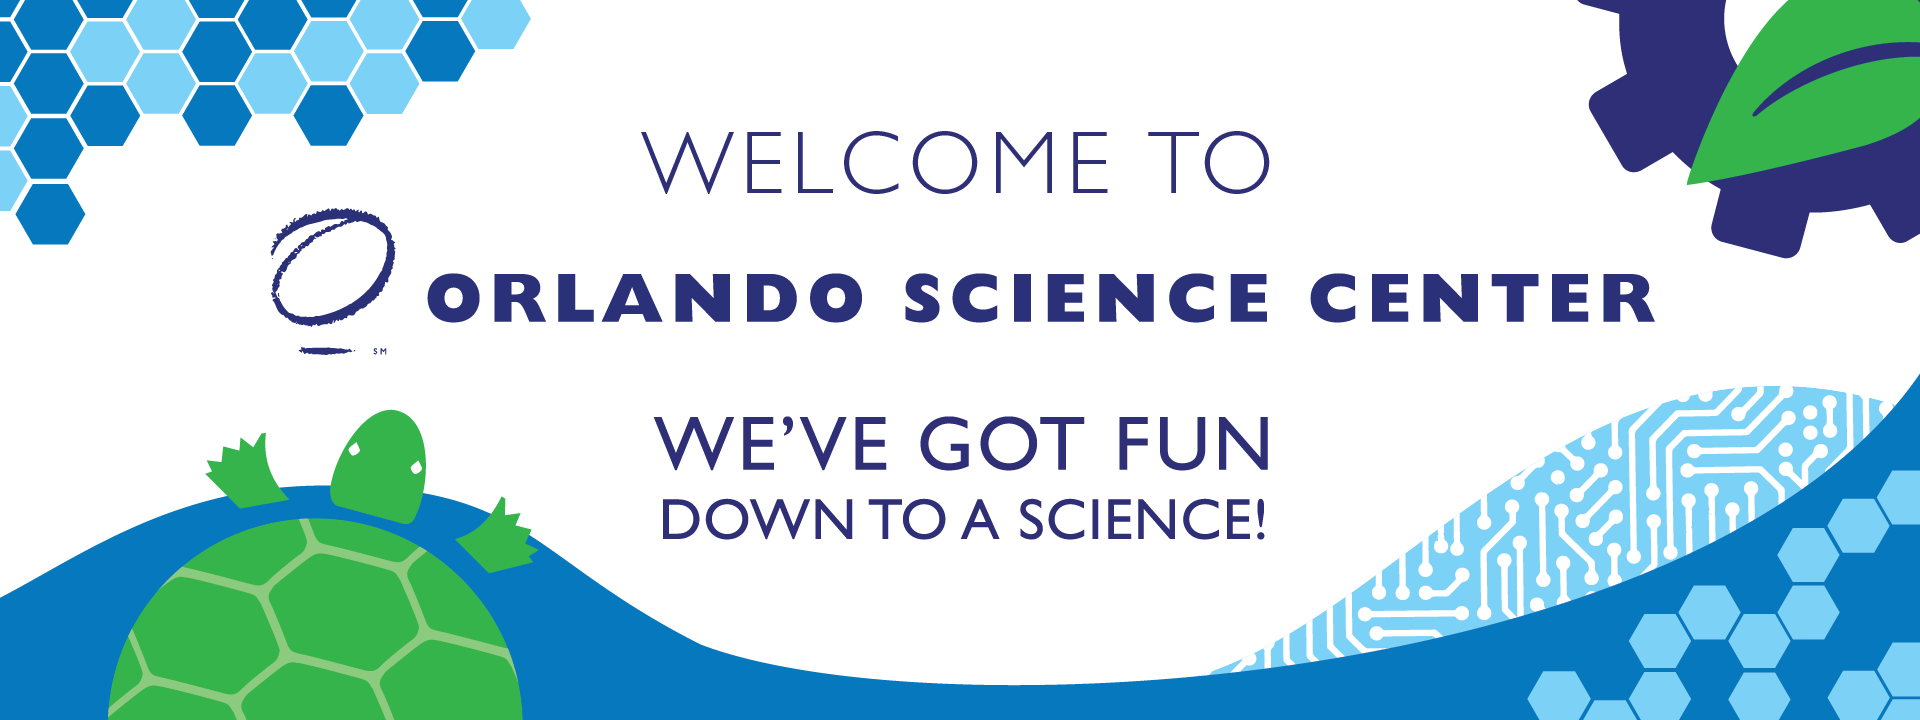 Welcome to Orlando Science Center – We've Got Fun Down to a Science!